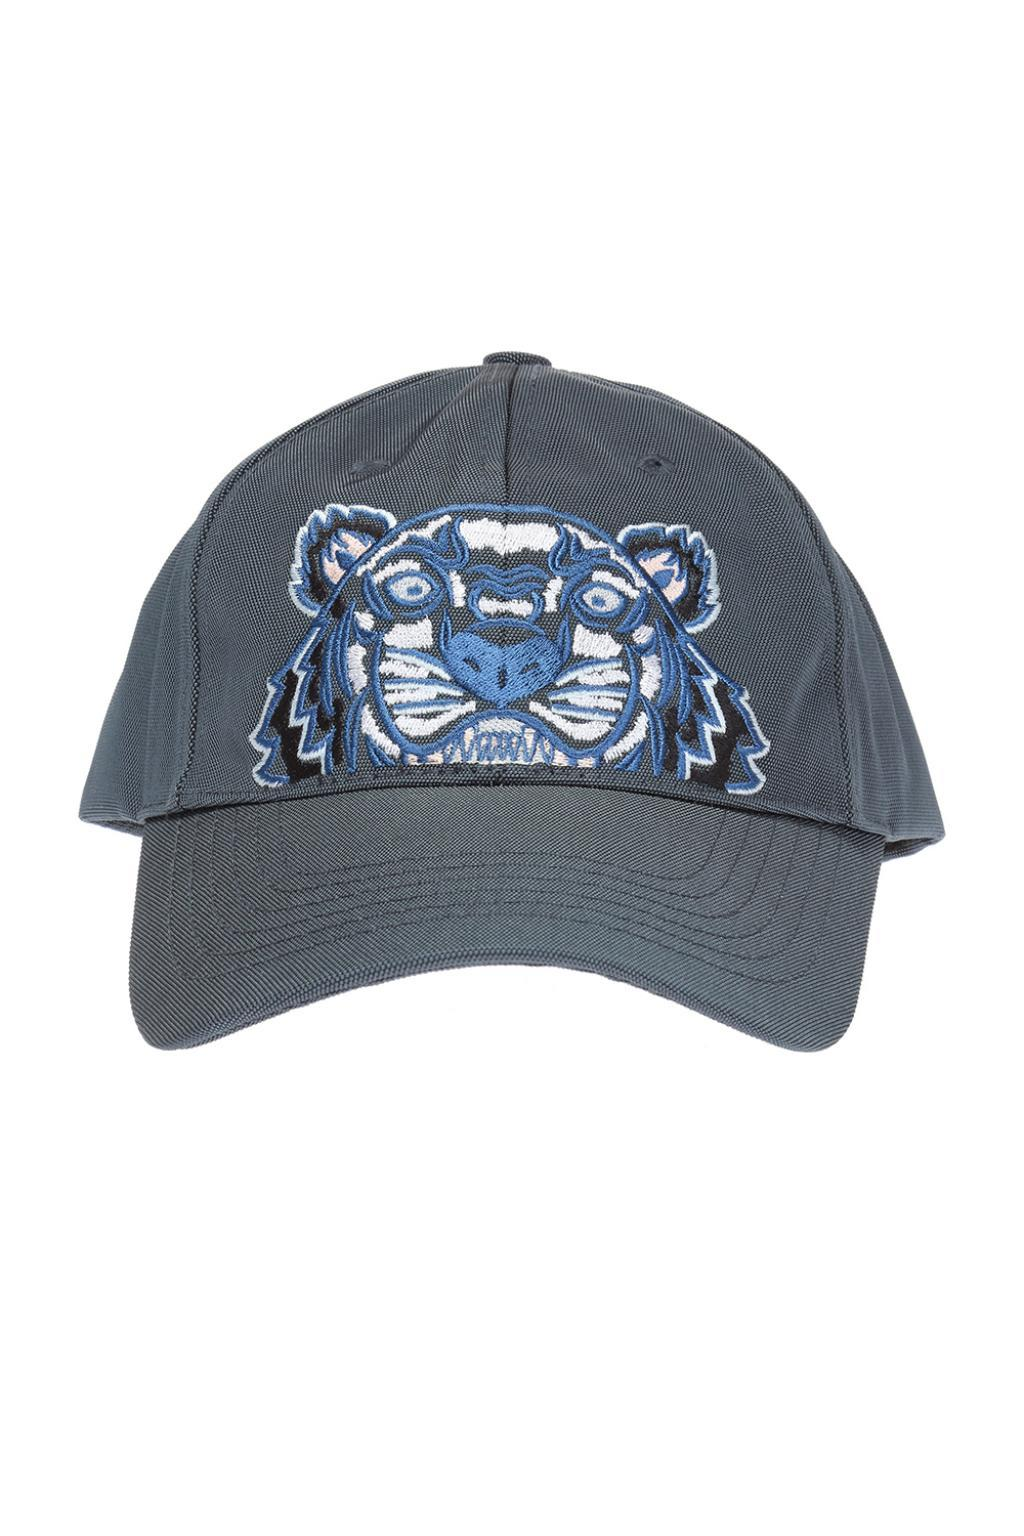 a6c25b8a3be Lyst - KENZO Embroidered Tiger Head Baseball Cap in Gray for Men